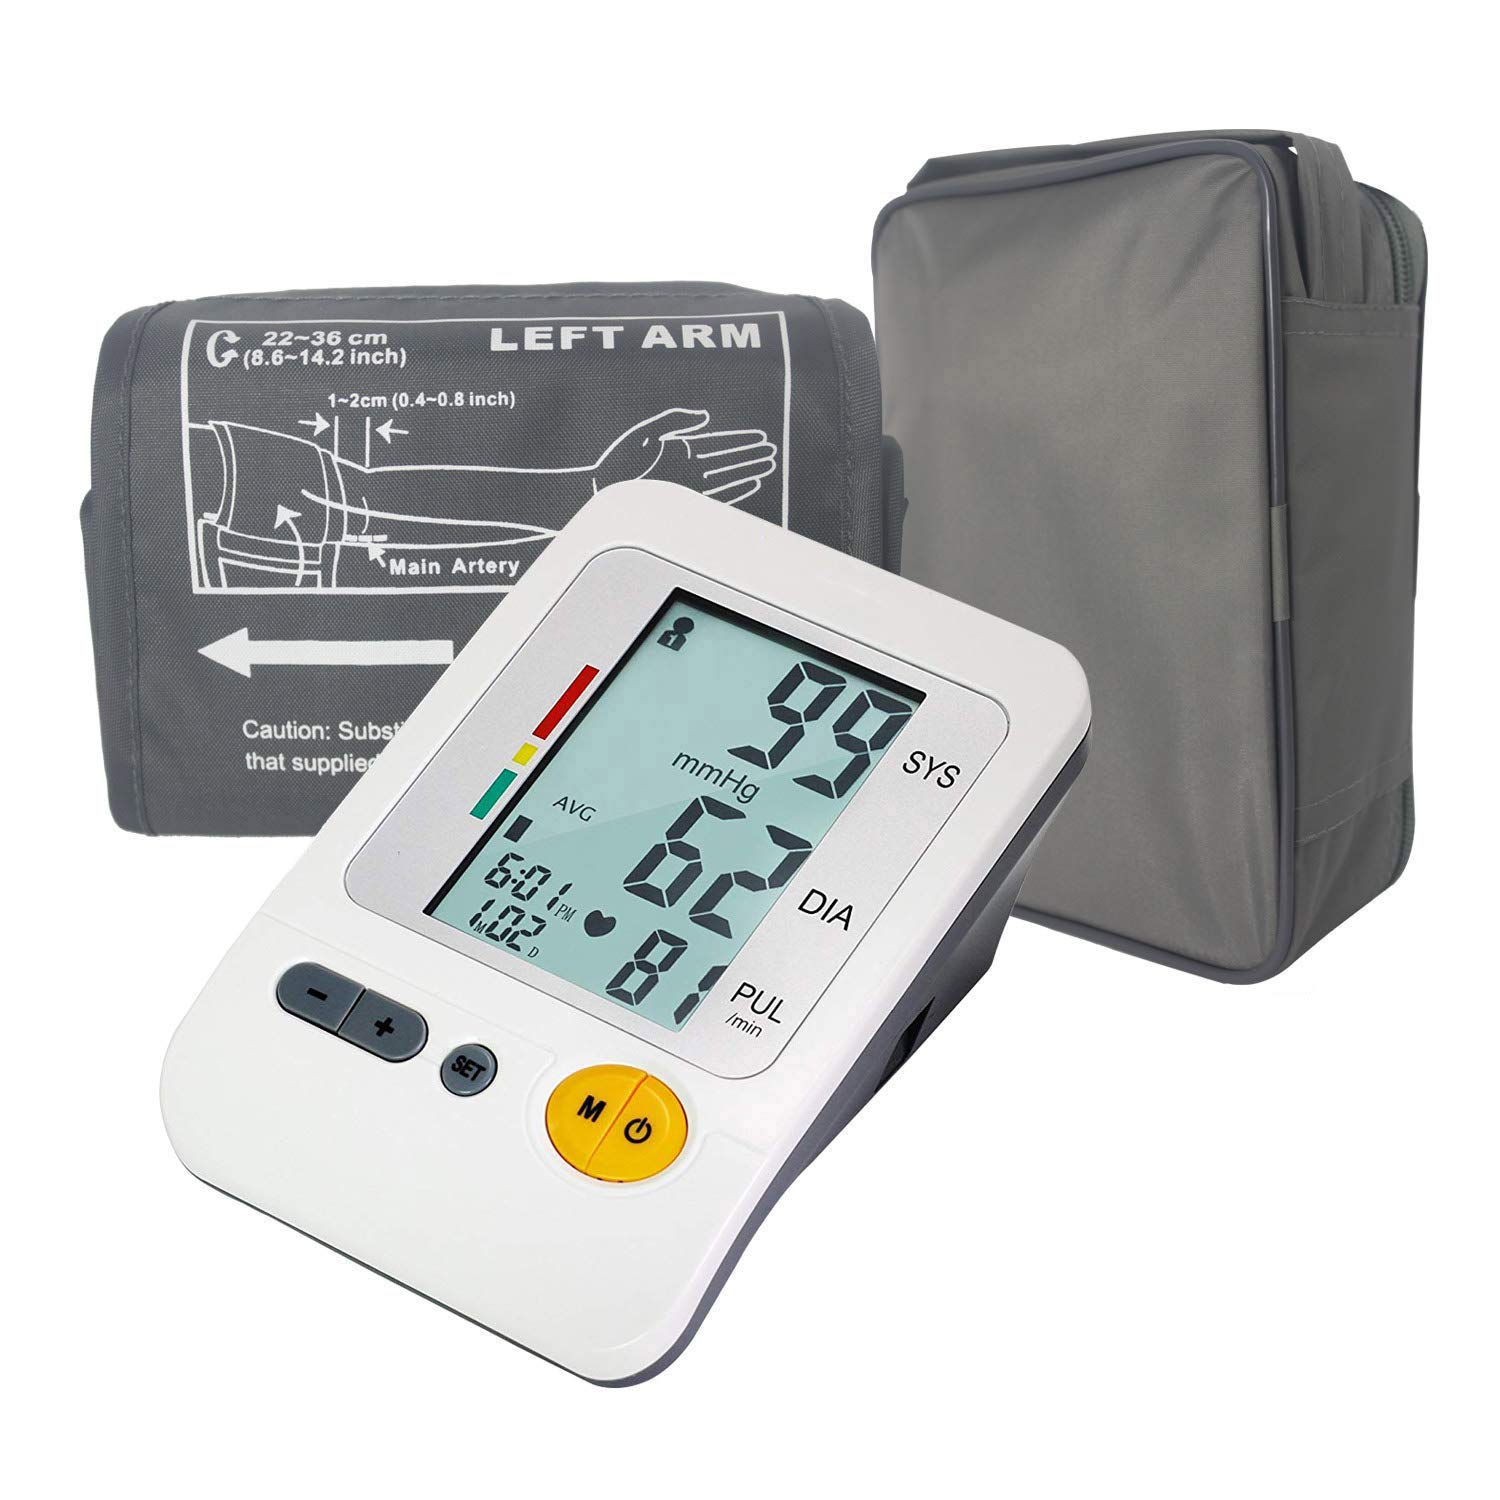 Automatic Blood Pressure Monitor Upper Arm, 4 User Digital Blood Pressure Monitor Large Cuff with Pulse Rate for Home Use, Portable BP Machine Large Backlight Display, FDA CE Approved White